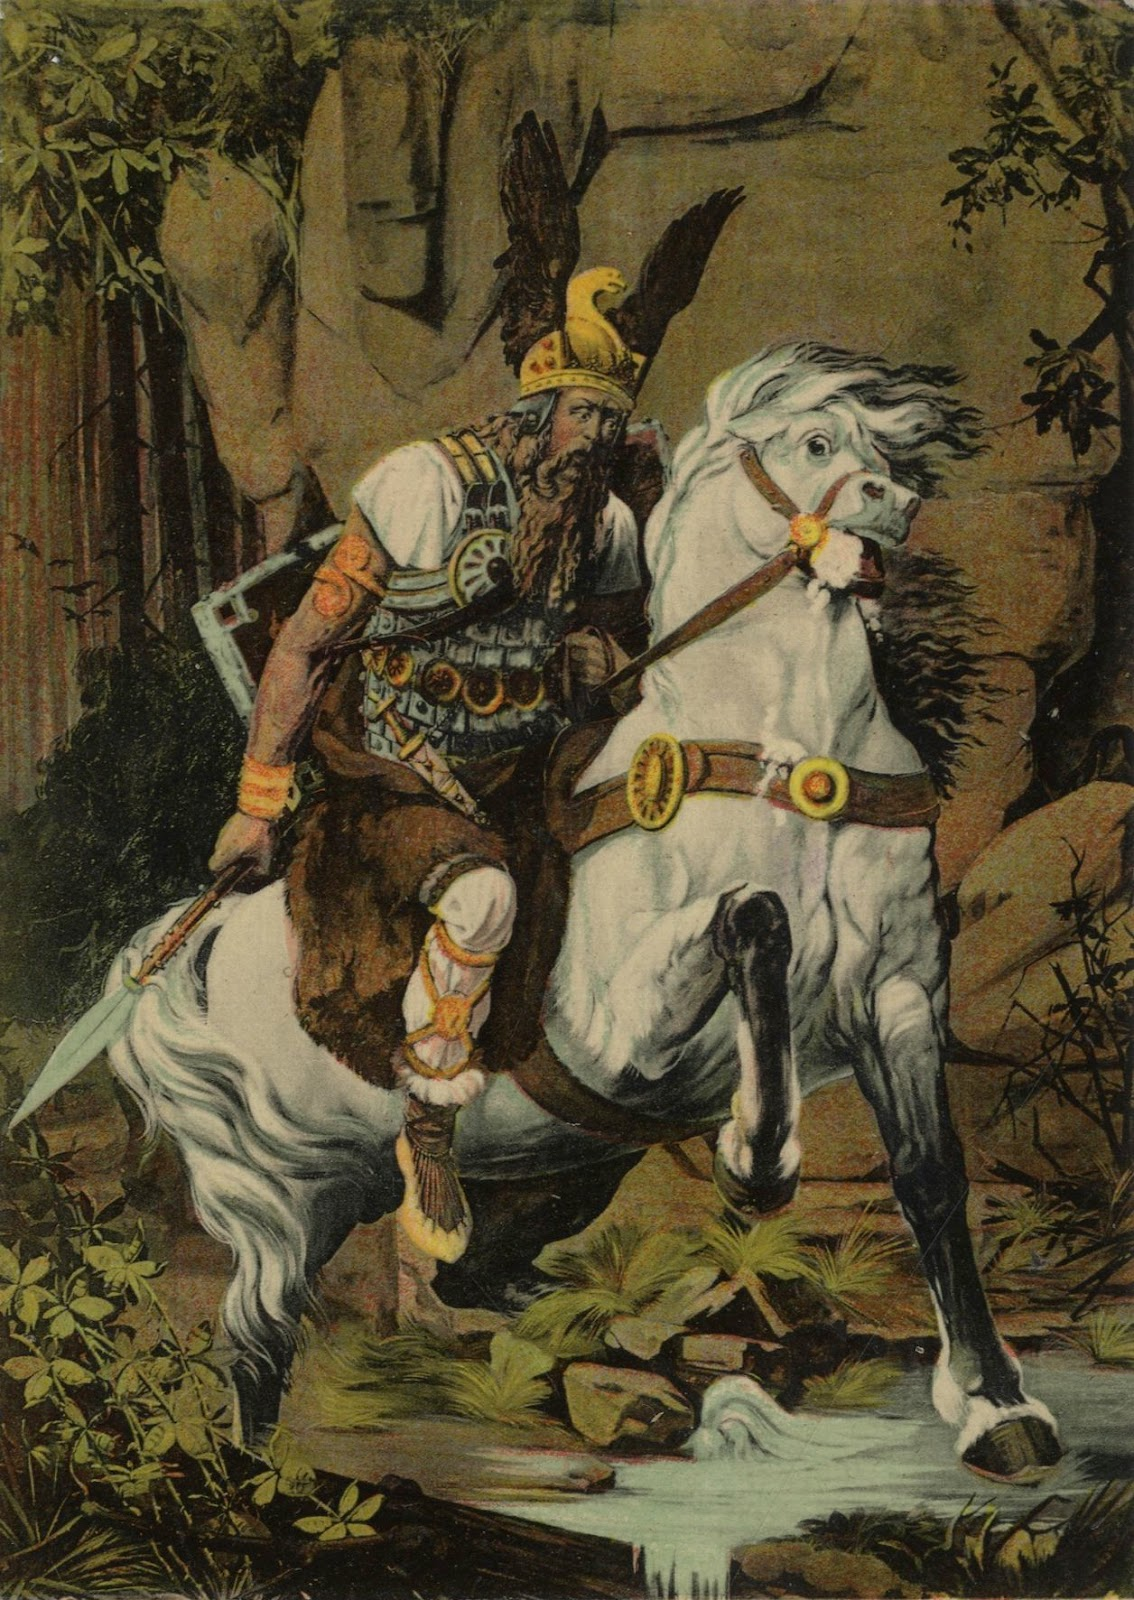 beowulf religion Beowulf's victory is couched in medieval christian imagery, and his motivations and successes are aligned with the medieval christian idea of god and righteousness, while grendel is depicted as.